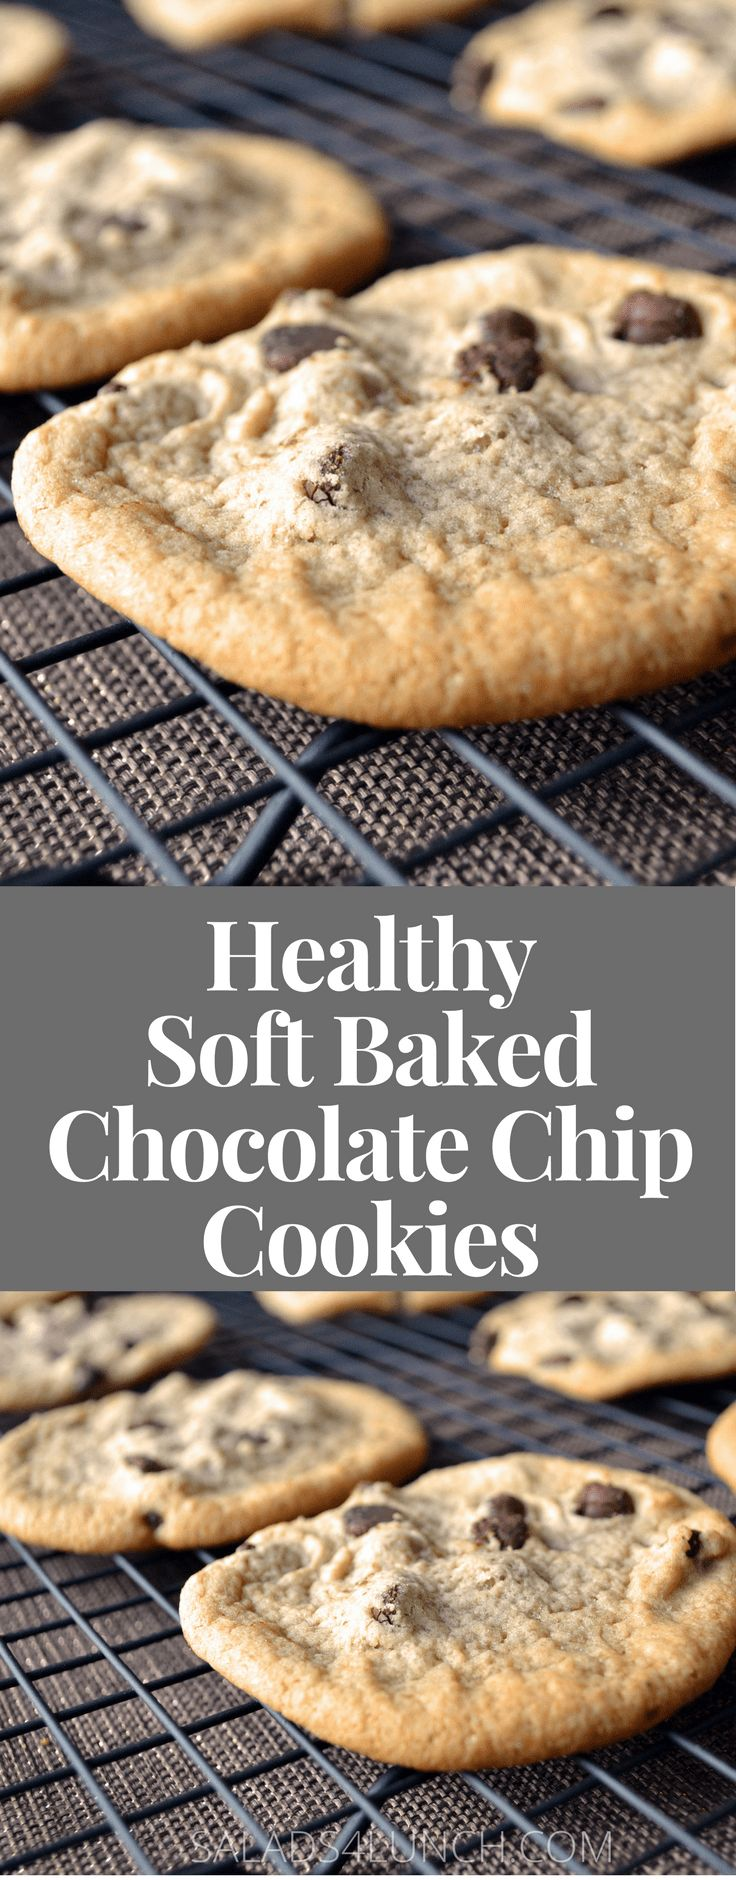 Healthy Soft Baked Chocolate Chip Cookies - easy and delicious! Warning: these chocolate chip cookies are best enjoyed with a tall glass of milk